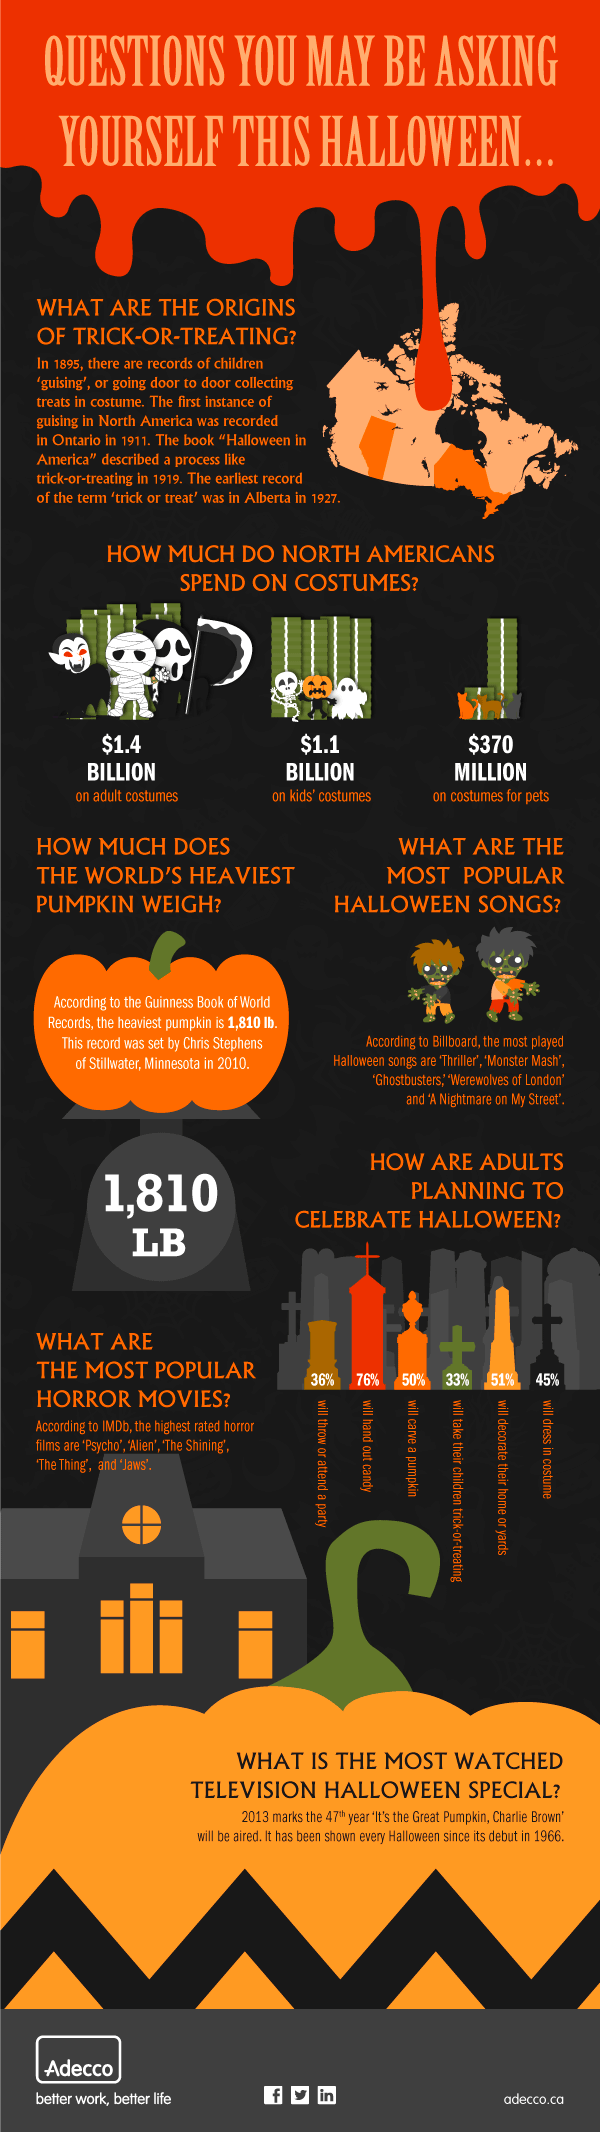 Happy Halloween Infographic Adecco in the Know - About Halloween